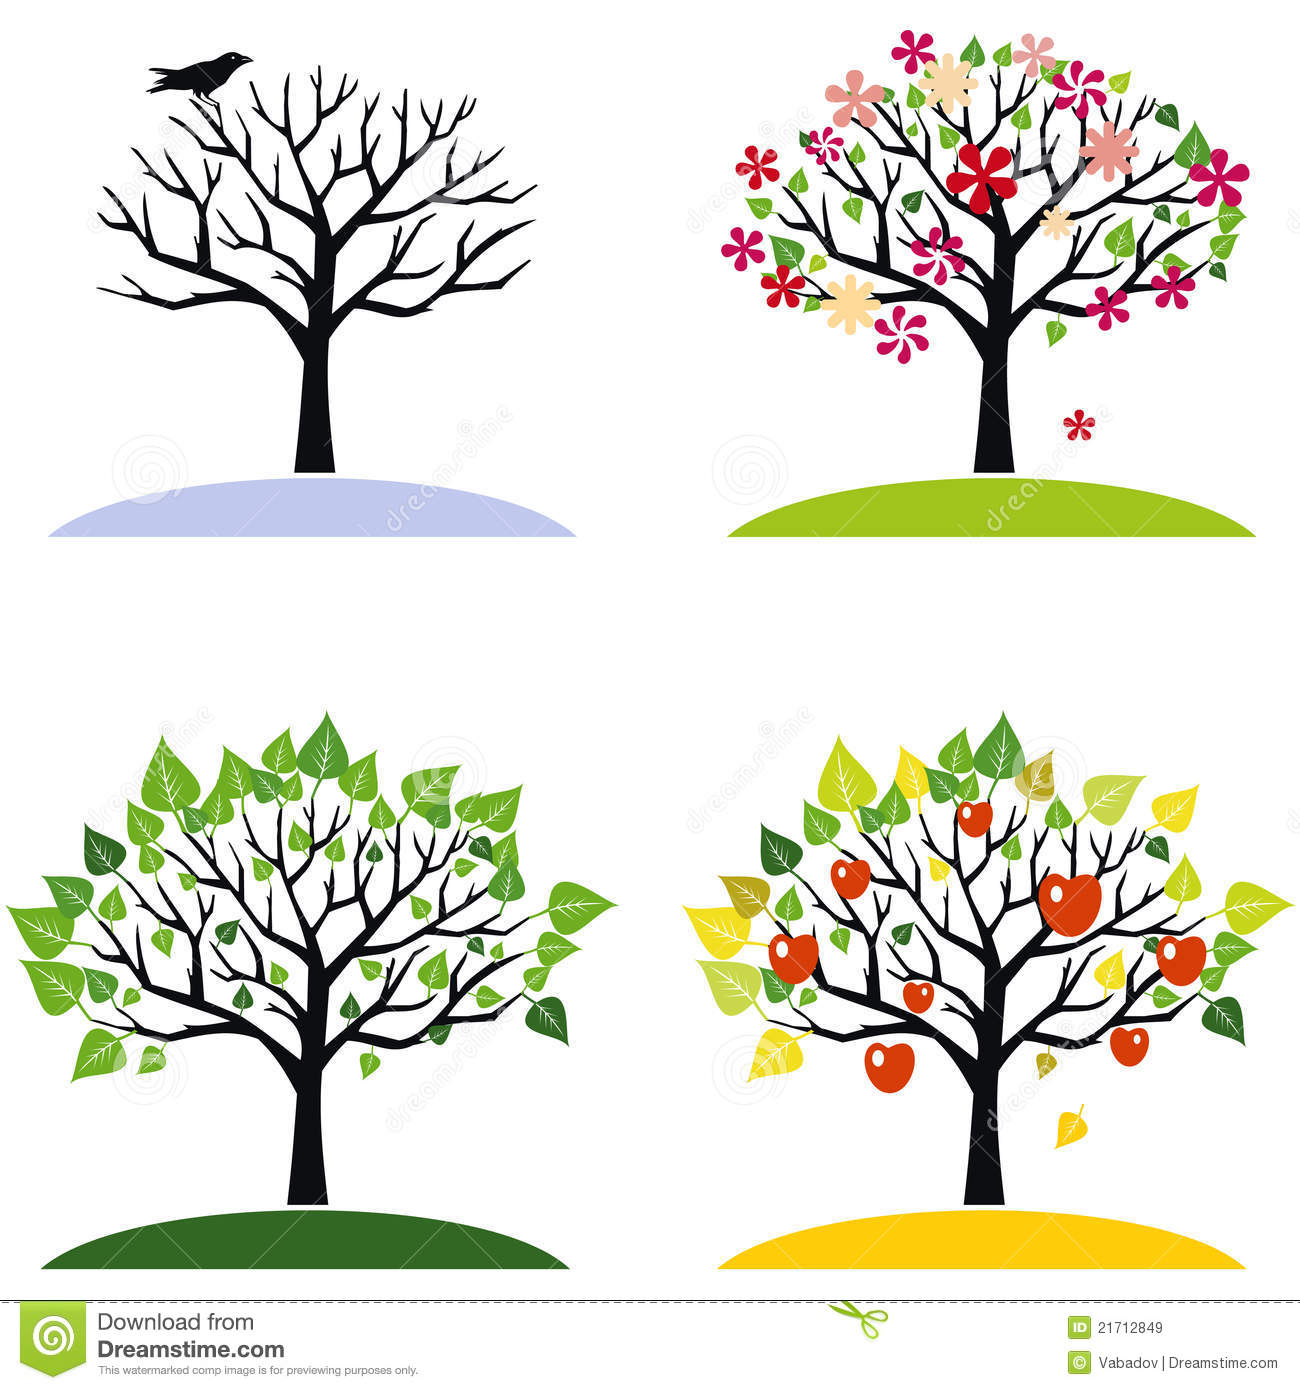 Giving Tree Worksheet Printable